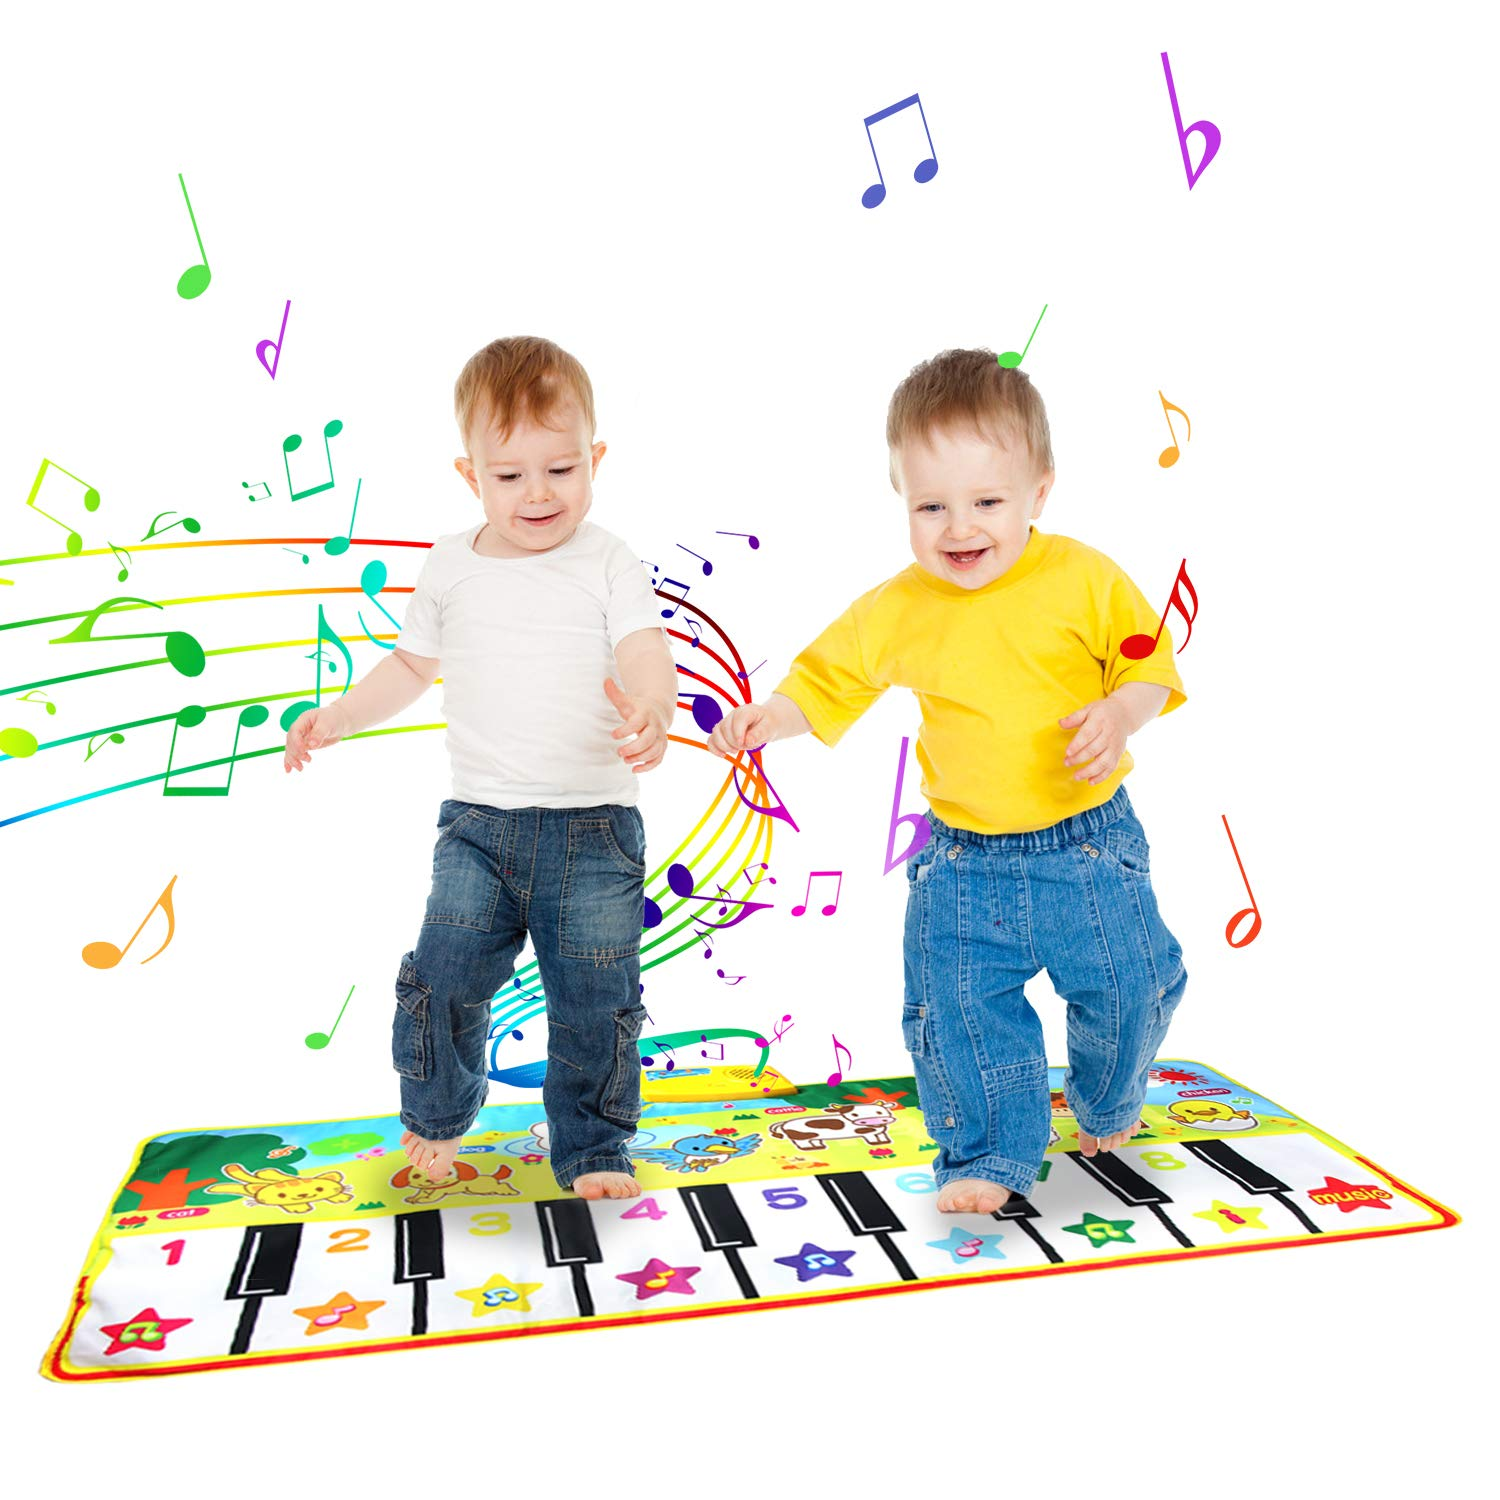 "Jenilily Piano Mat, Kids Musical Piano Mat 53"" x 23"" Music Keyboard Play Mat with 8 Animal Sounds Dance Mat Educational Musical Toy Gift for Girls Boys Toddlers"